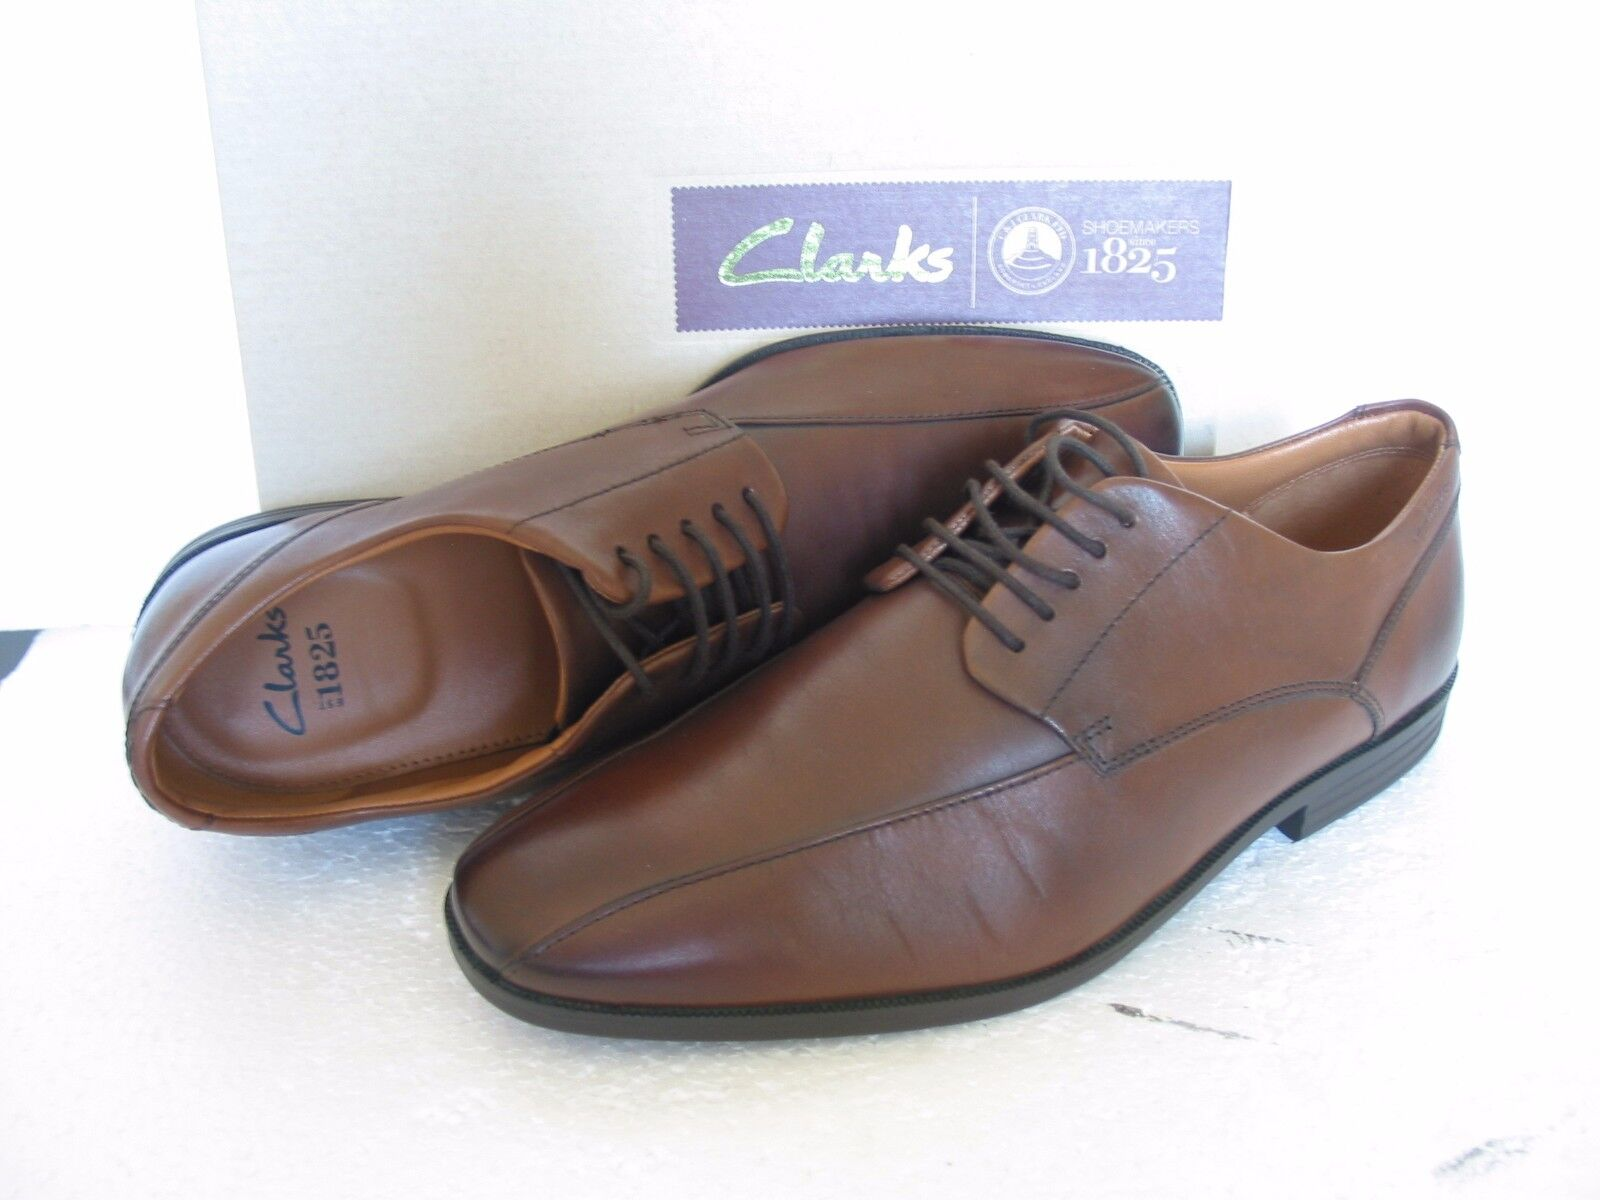 NEW CLARKS SHOES GLENRISE OVER BROWN LEATHER SHOES CLARKS SIZE 7.5 G & 7 H 649cfd